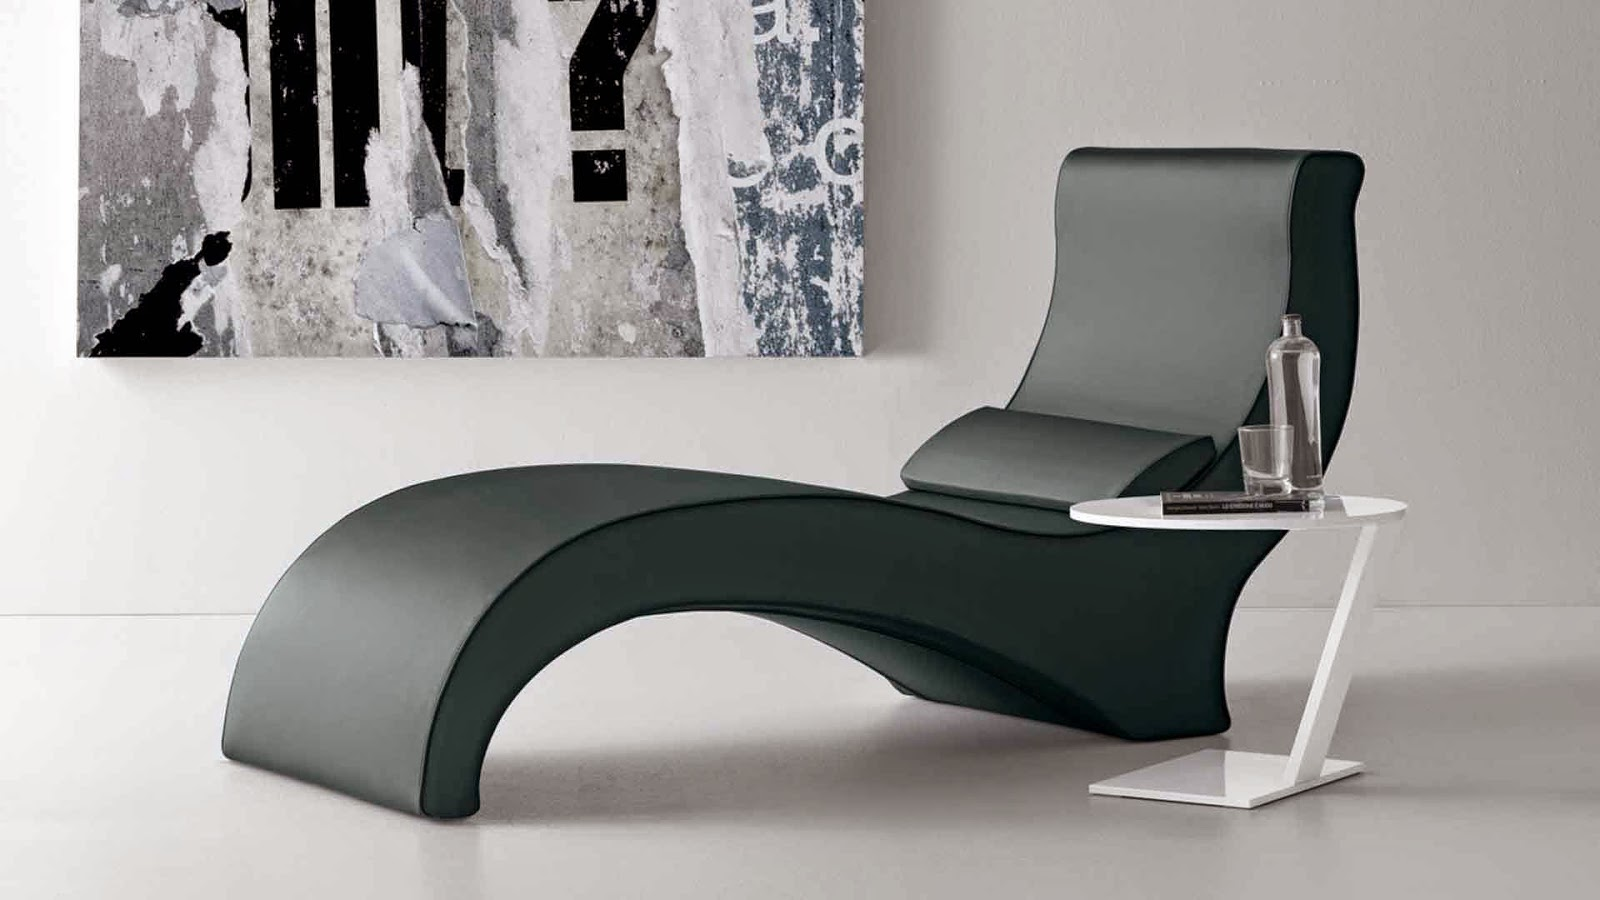 J waddell interiors diva design for spring for Chaise longue design piscine